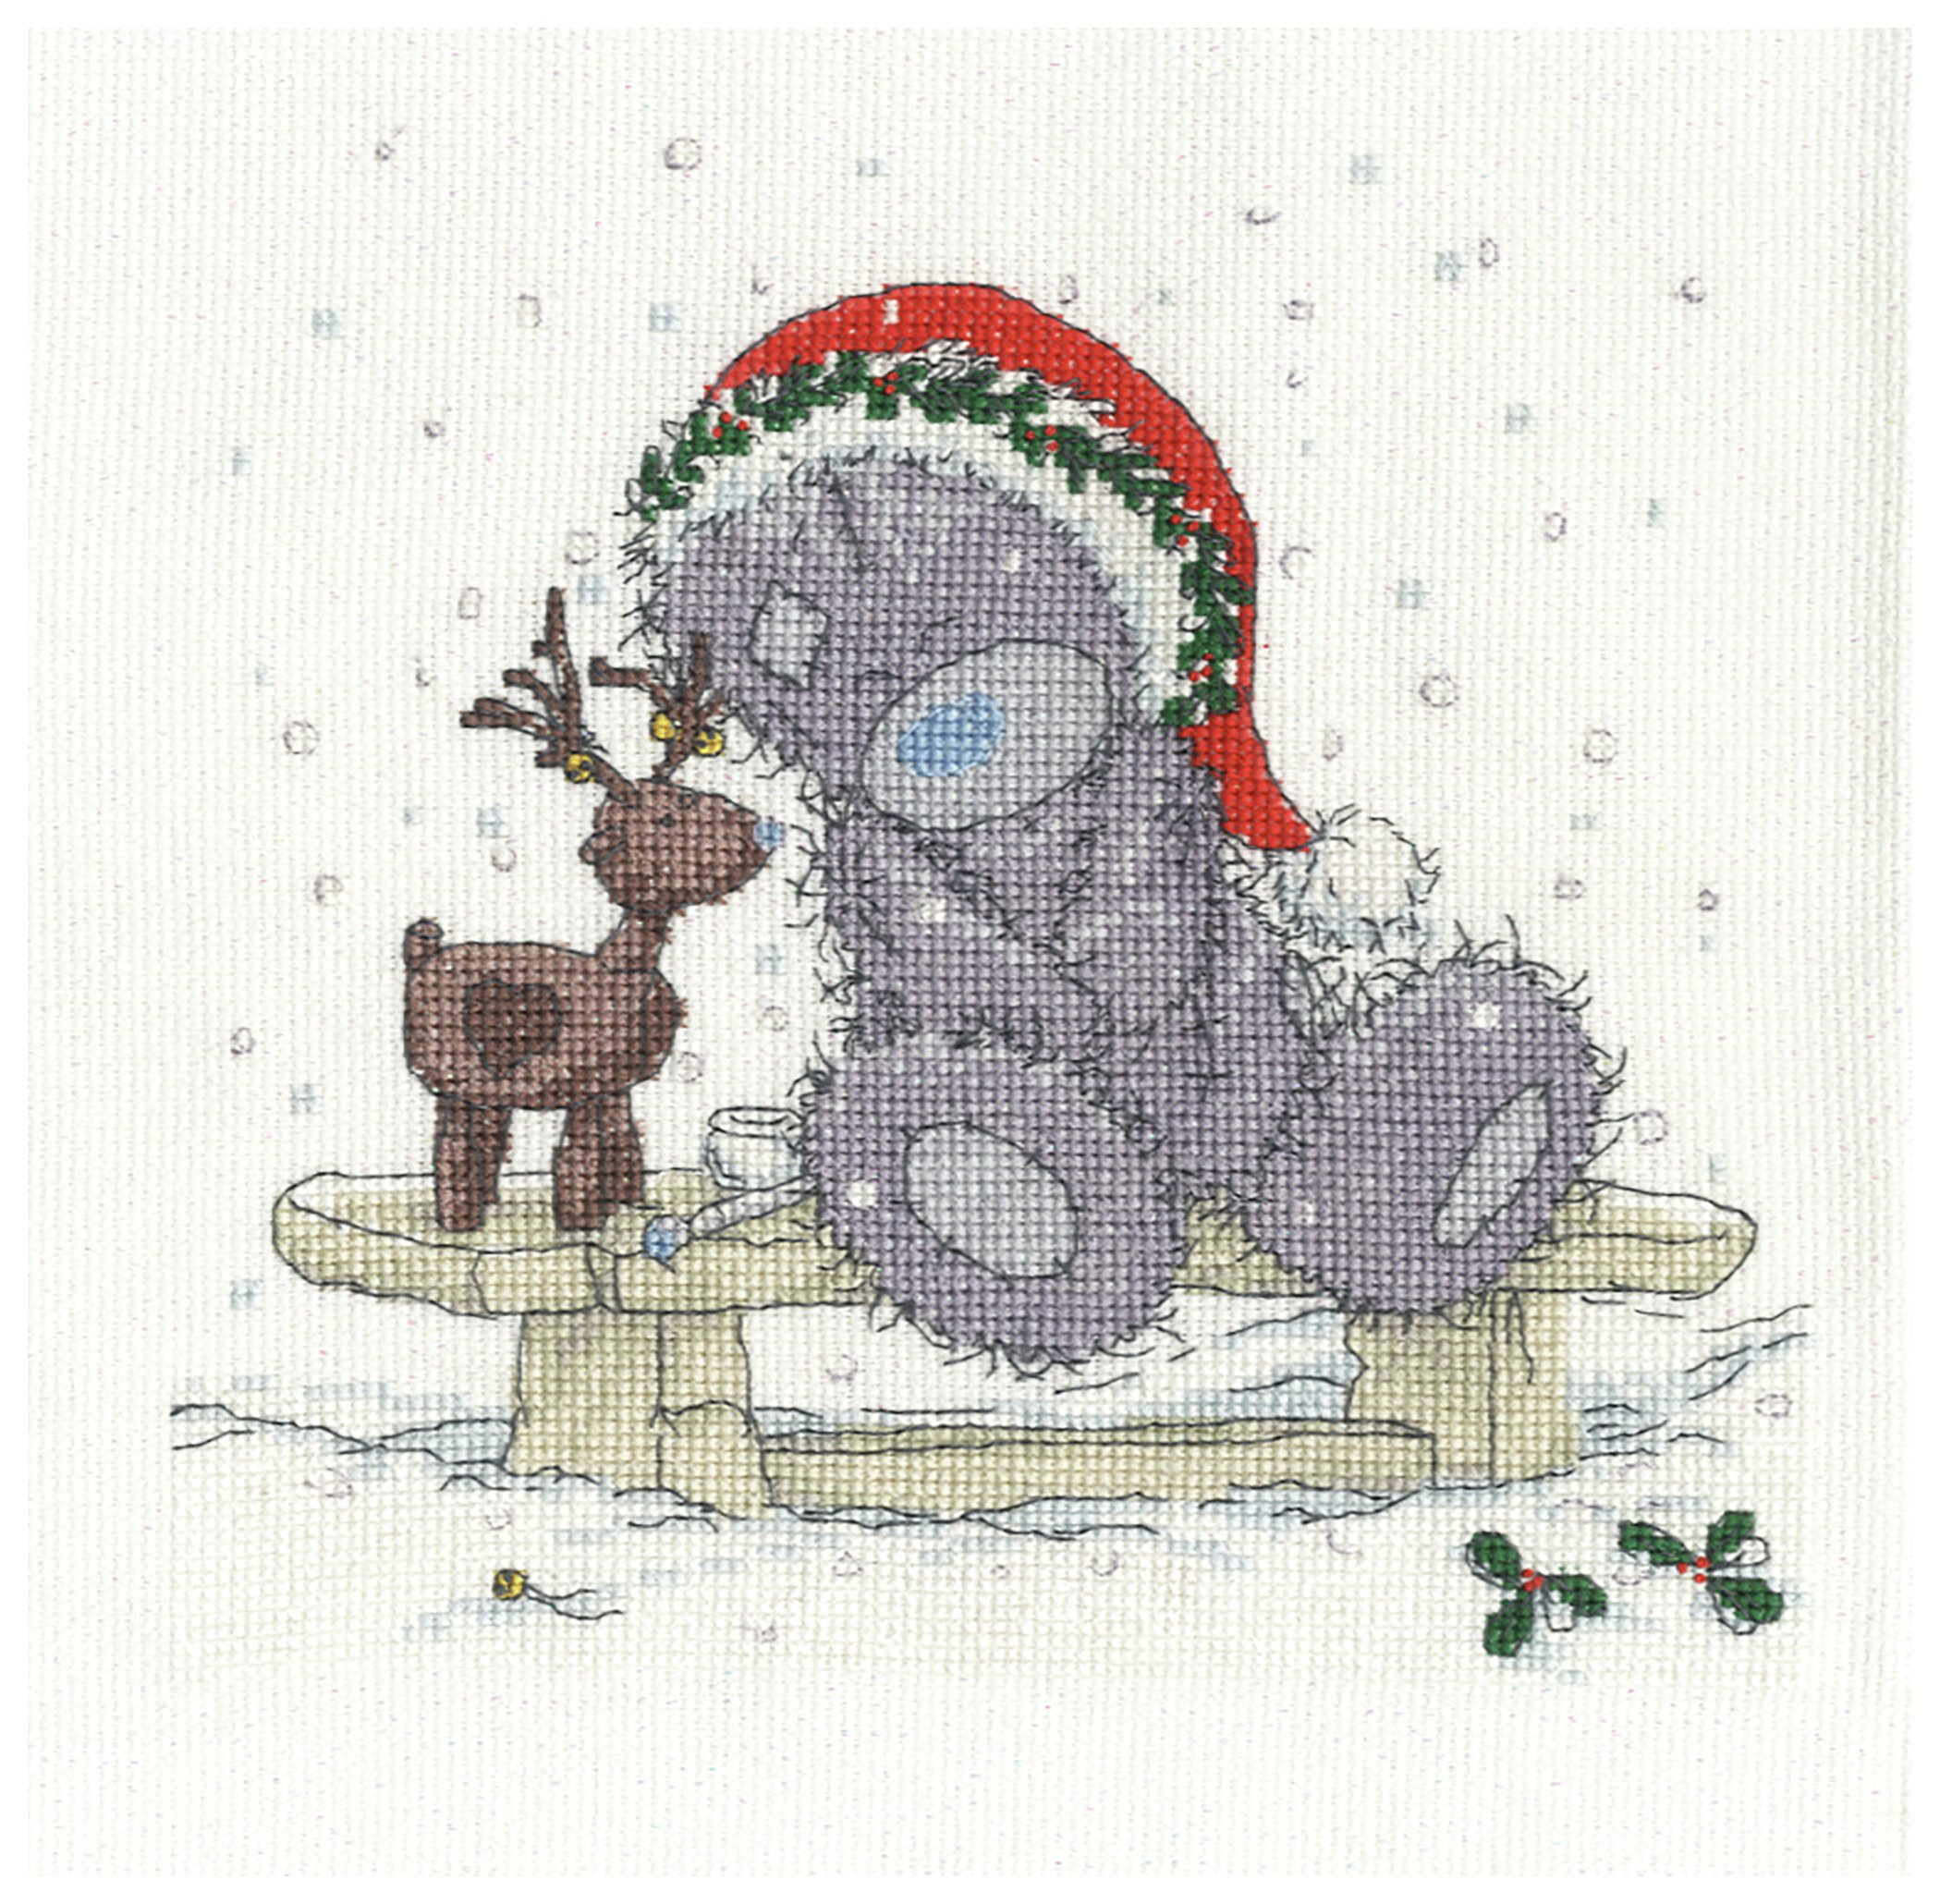 me-to-you-friends-in-the-snow-cross-stitch-kit